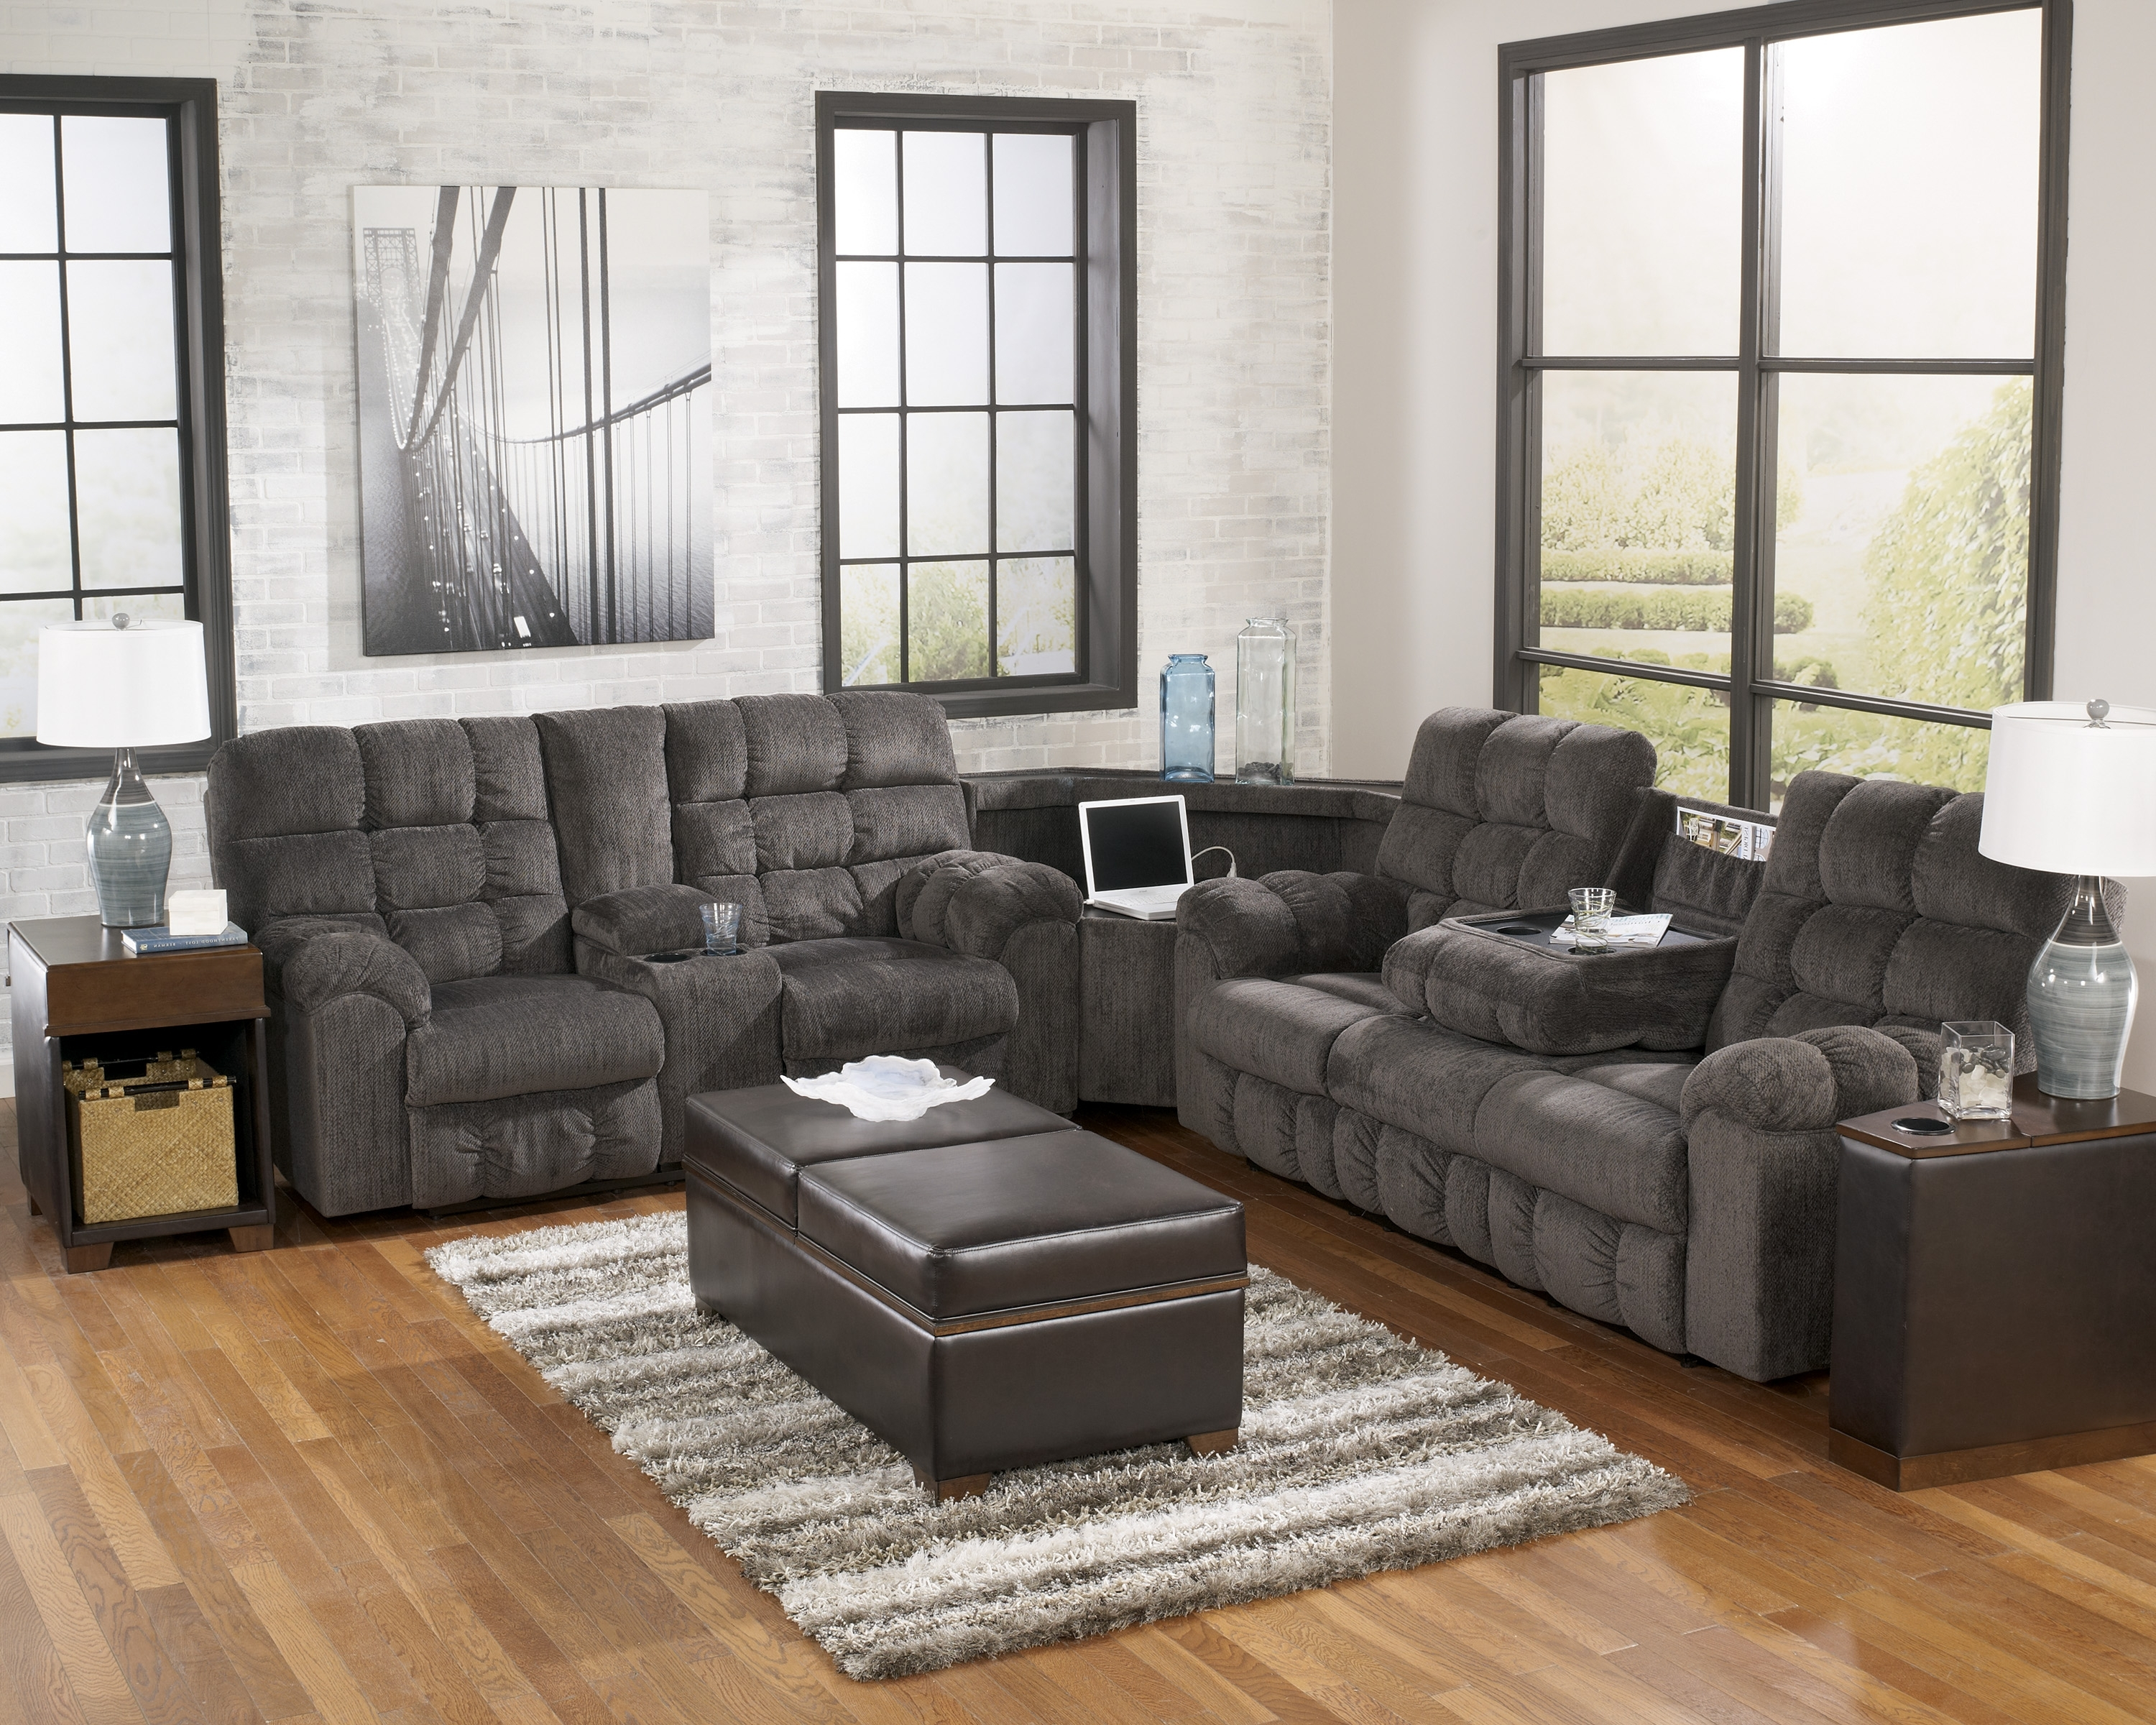 Sears Sectional Sofas Inside Fashionable Amazing Ashley Sofas And Sectionals 67 With Additional Used (View 4 of 15)